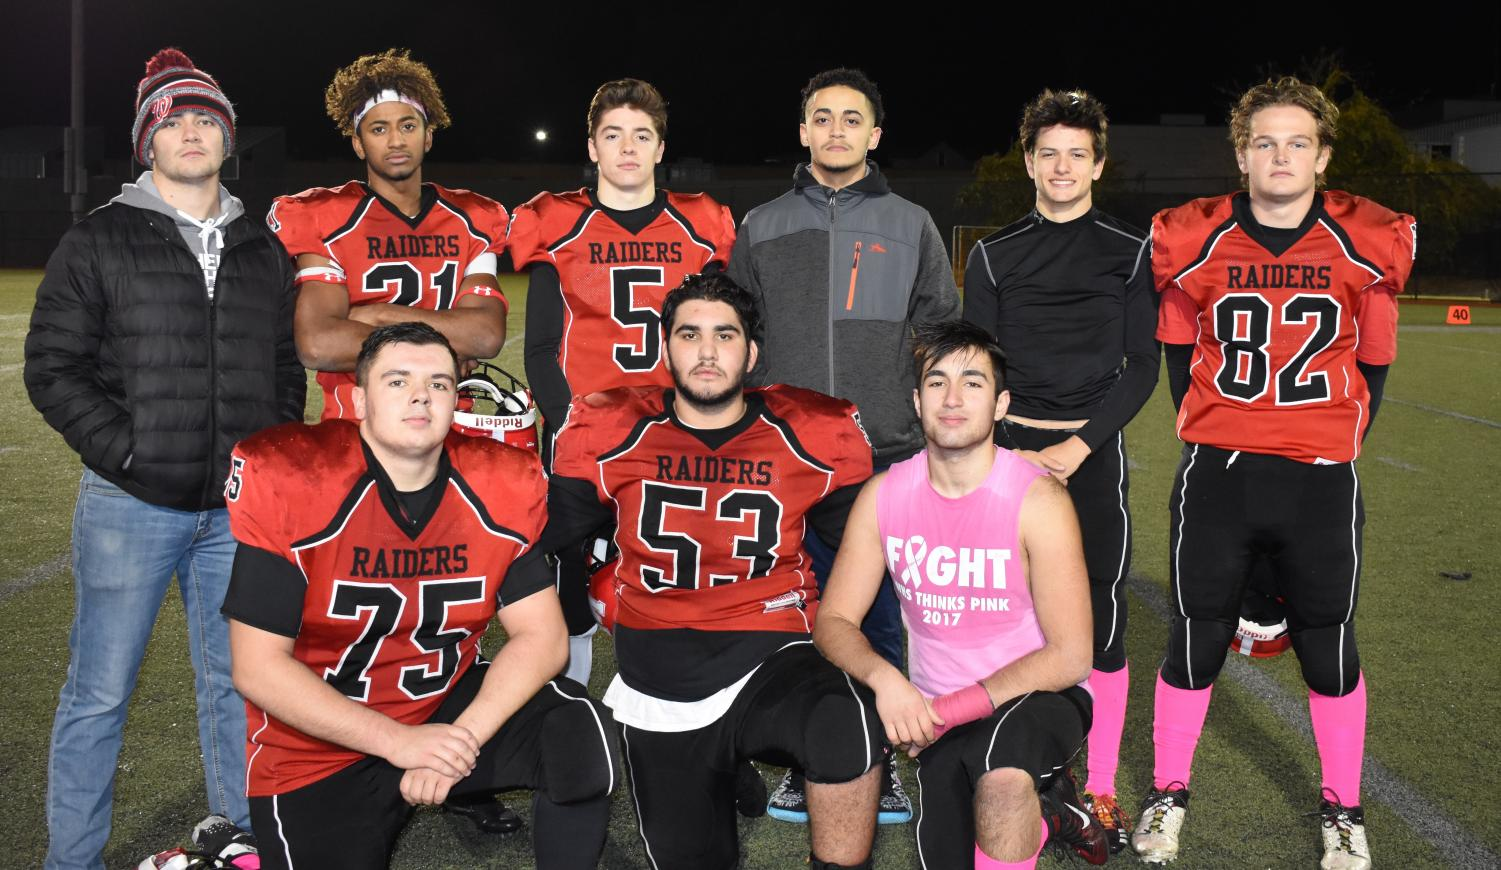 Watertown High will play host to Newburyport on Friday, Nov. 9, at 7 p.m., giving those in the Class of 2019 one final game at Victory Field.